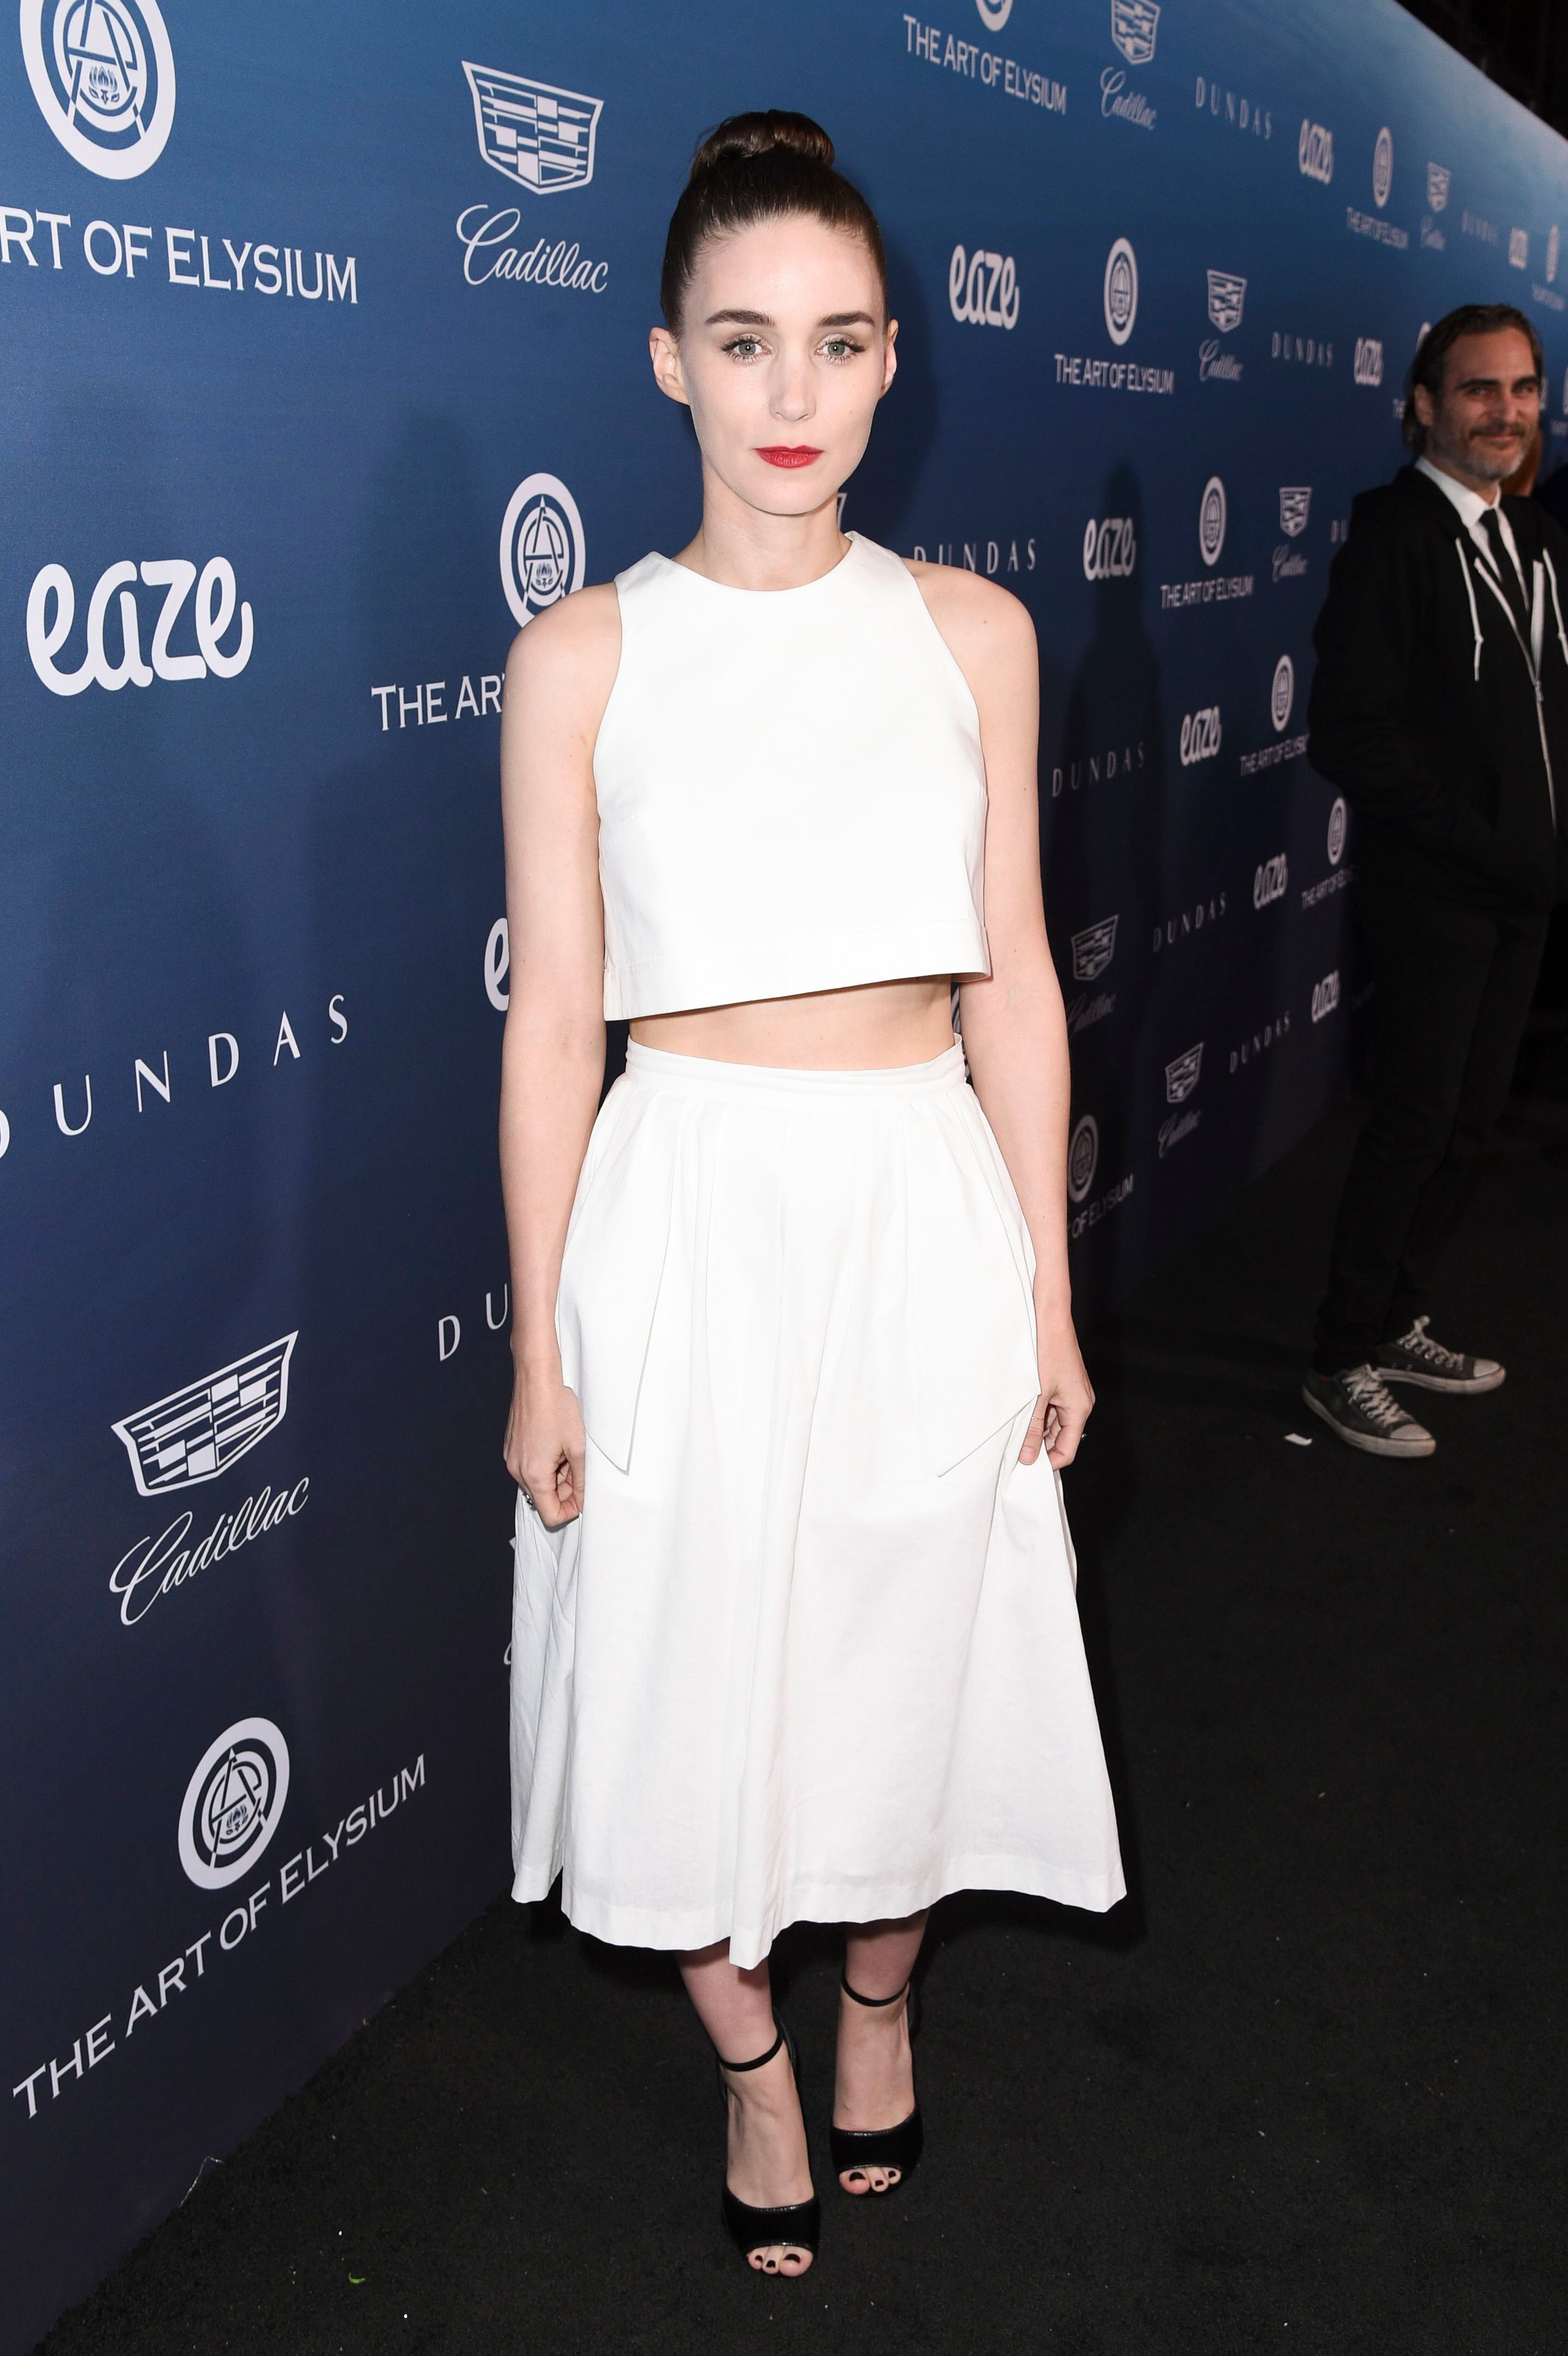 Rooney Mara attends The Art of Elysium's 12th Annual Black Tie Event Heaven in Los Angeles on Jan. 5, 2019.